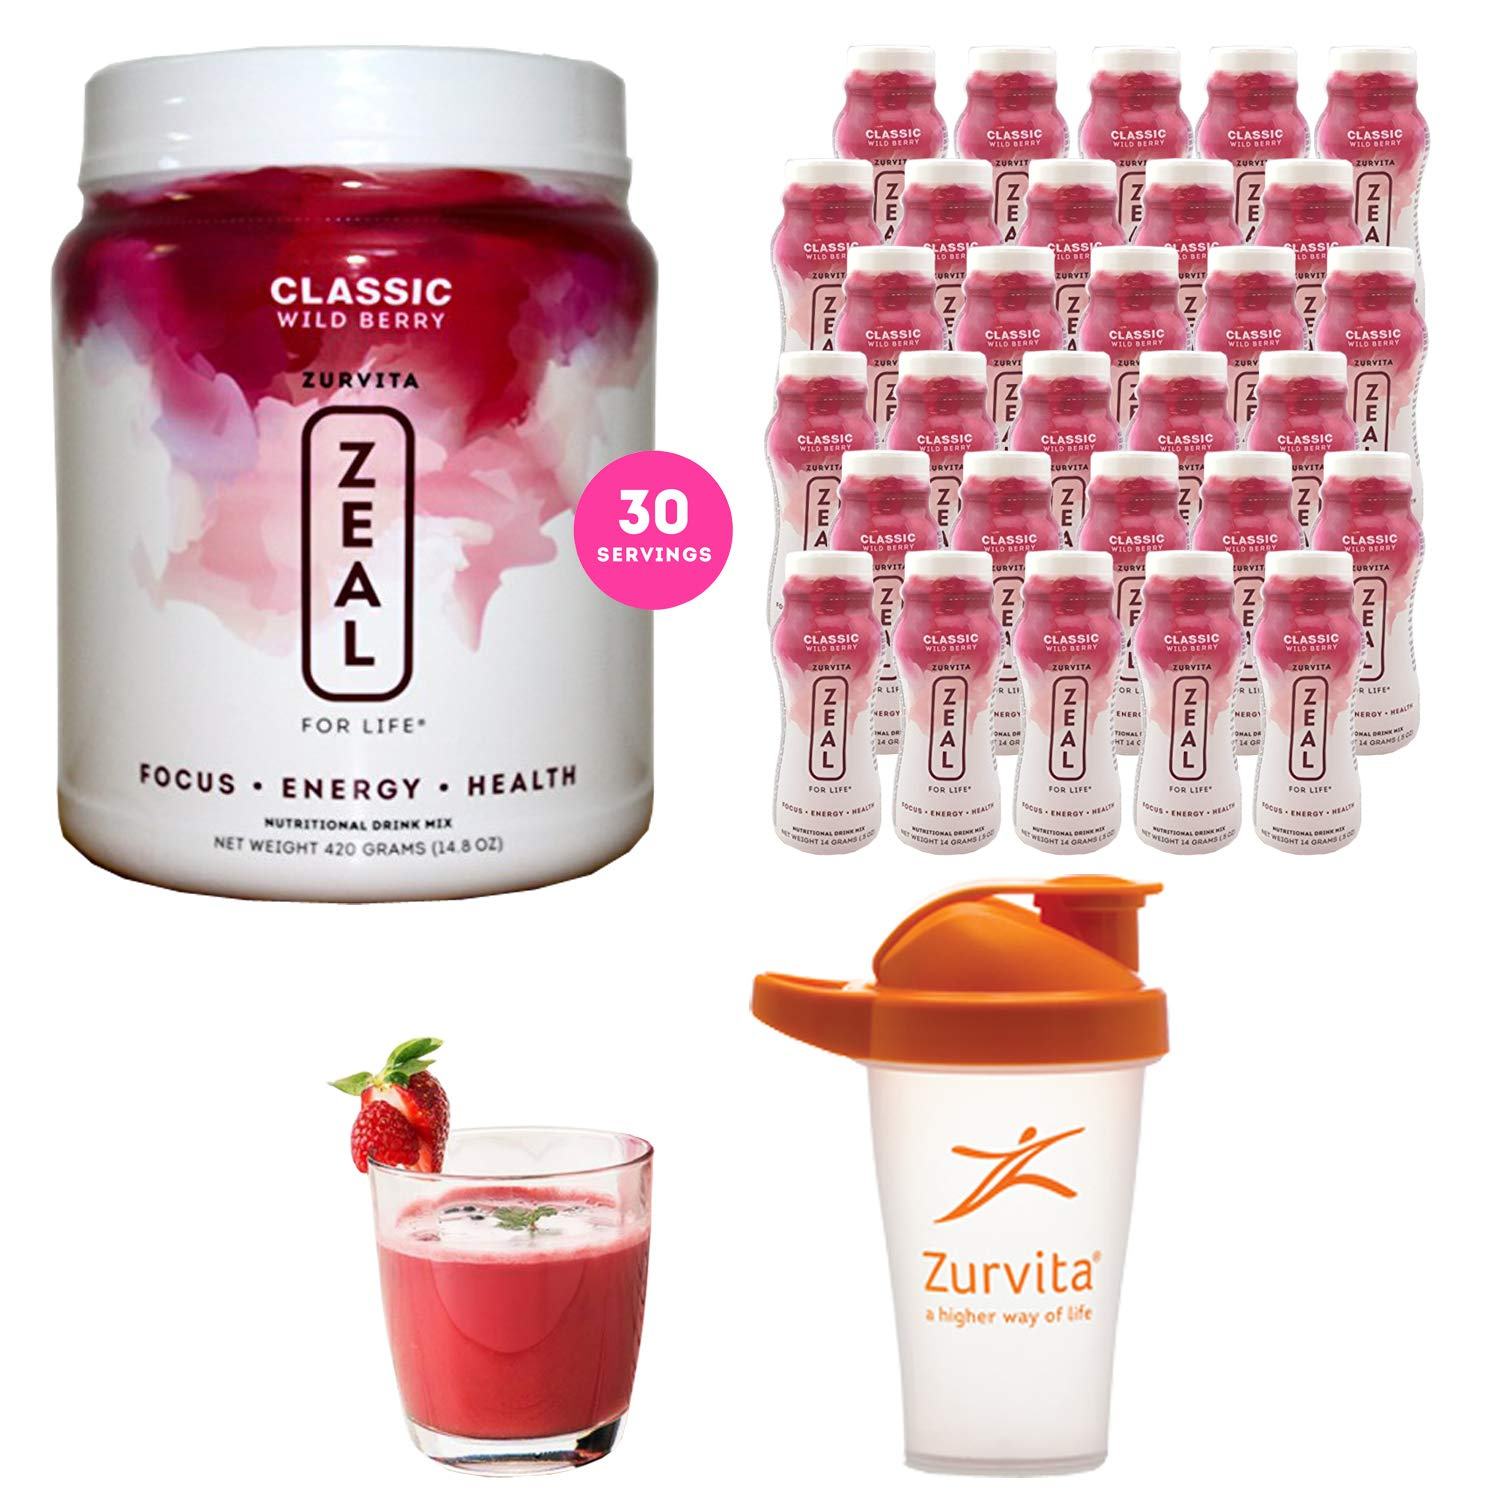 Zeal for life – Complete Nutritional Drink Mix – 1 Canister 30 Individual Bottles – 2 Month Supply Plus A Free Gift of Blender Shaker Bottle – Multi Shipments May Apply Wild Berry – Classic